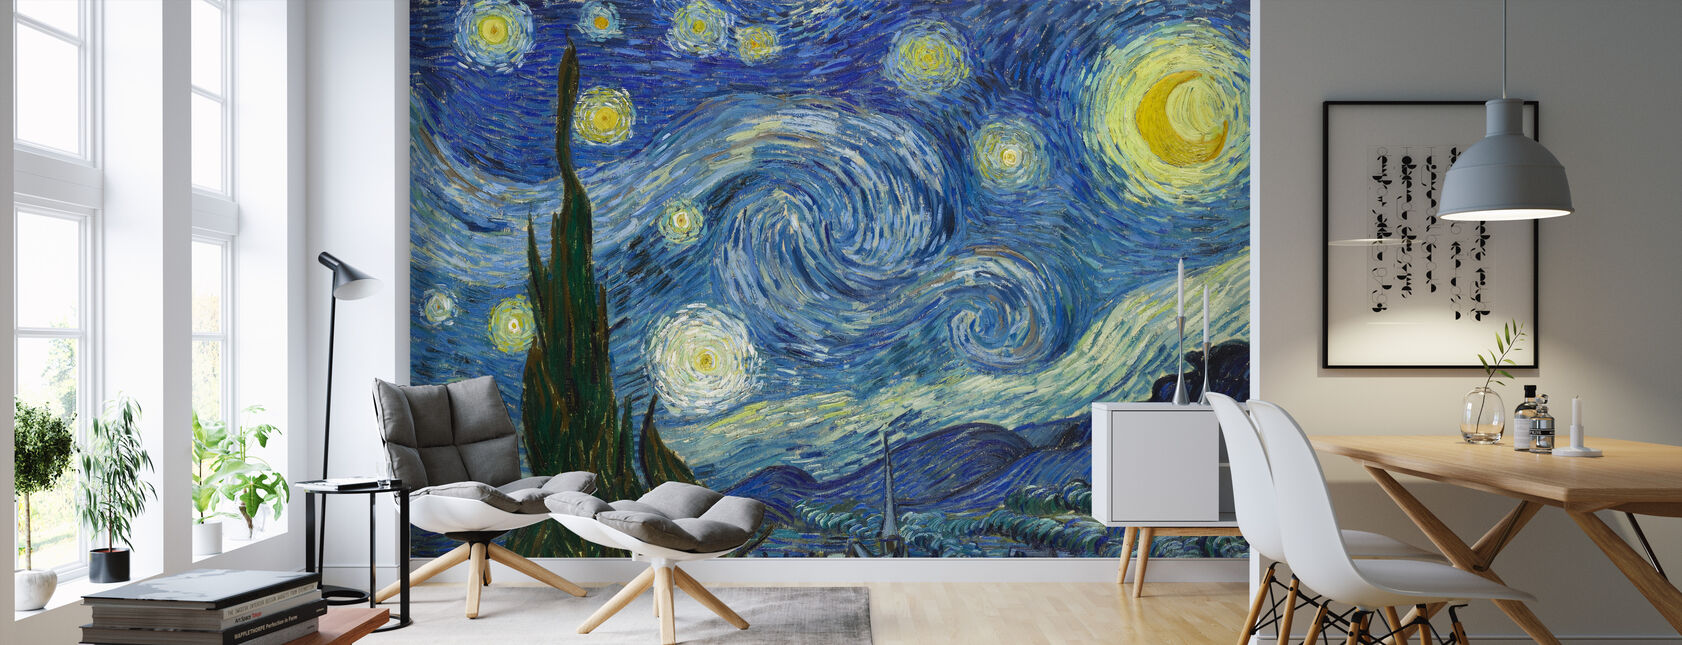 Vincent Van Gogh - Starry natt - Tapet - Vardagsrum